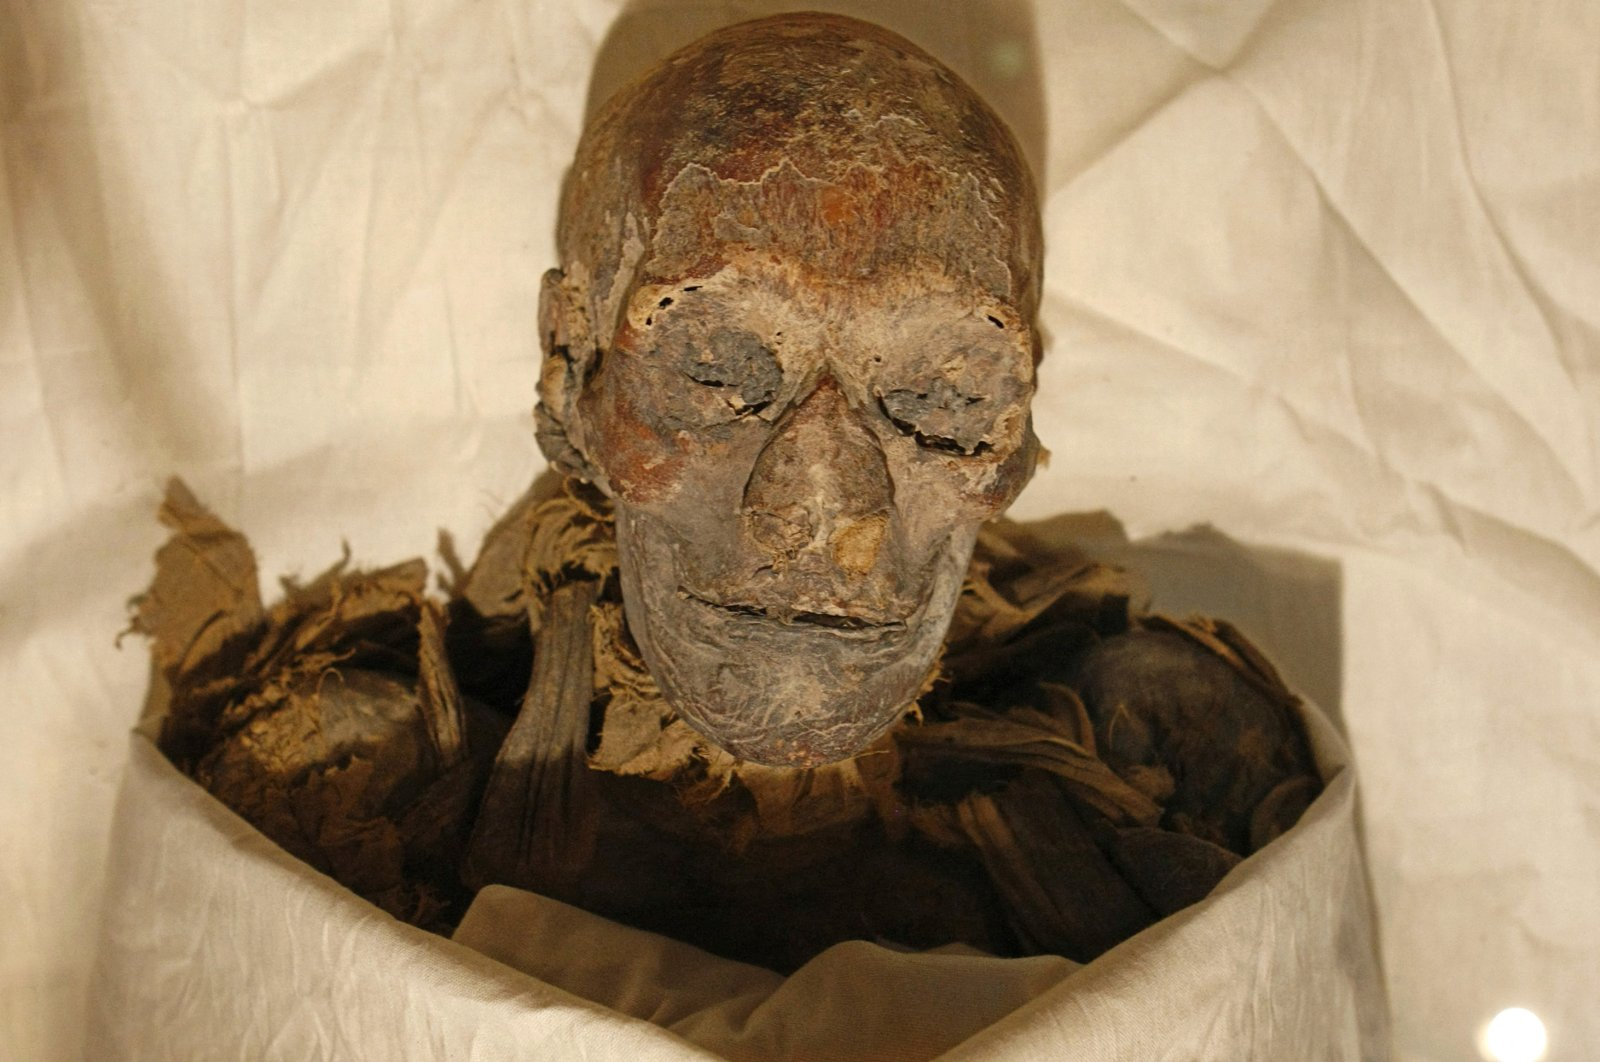 The mummified remains of Queen Hatshepsut, ancient Egypt's most famous female pharaoh, lie in a glass case after being unveiled at the Cairo Museum in Cairo, Egypt, June 27, 2007. (Photo by Cris BOURONCLE / AFP)